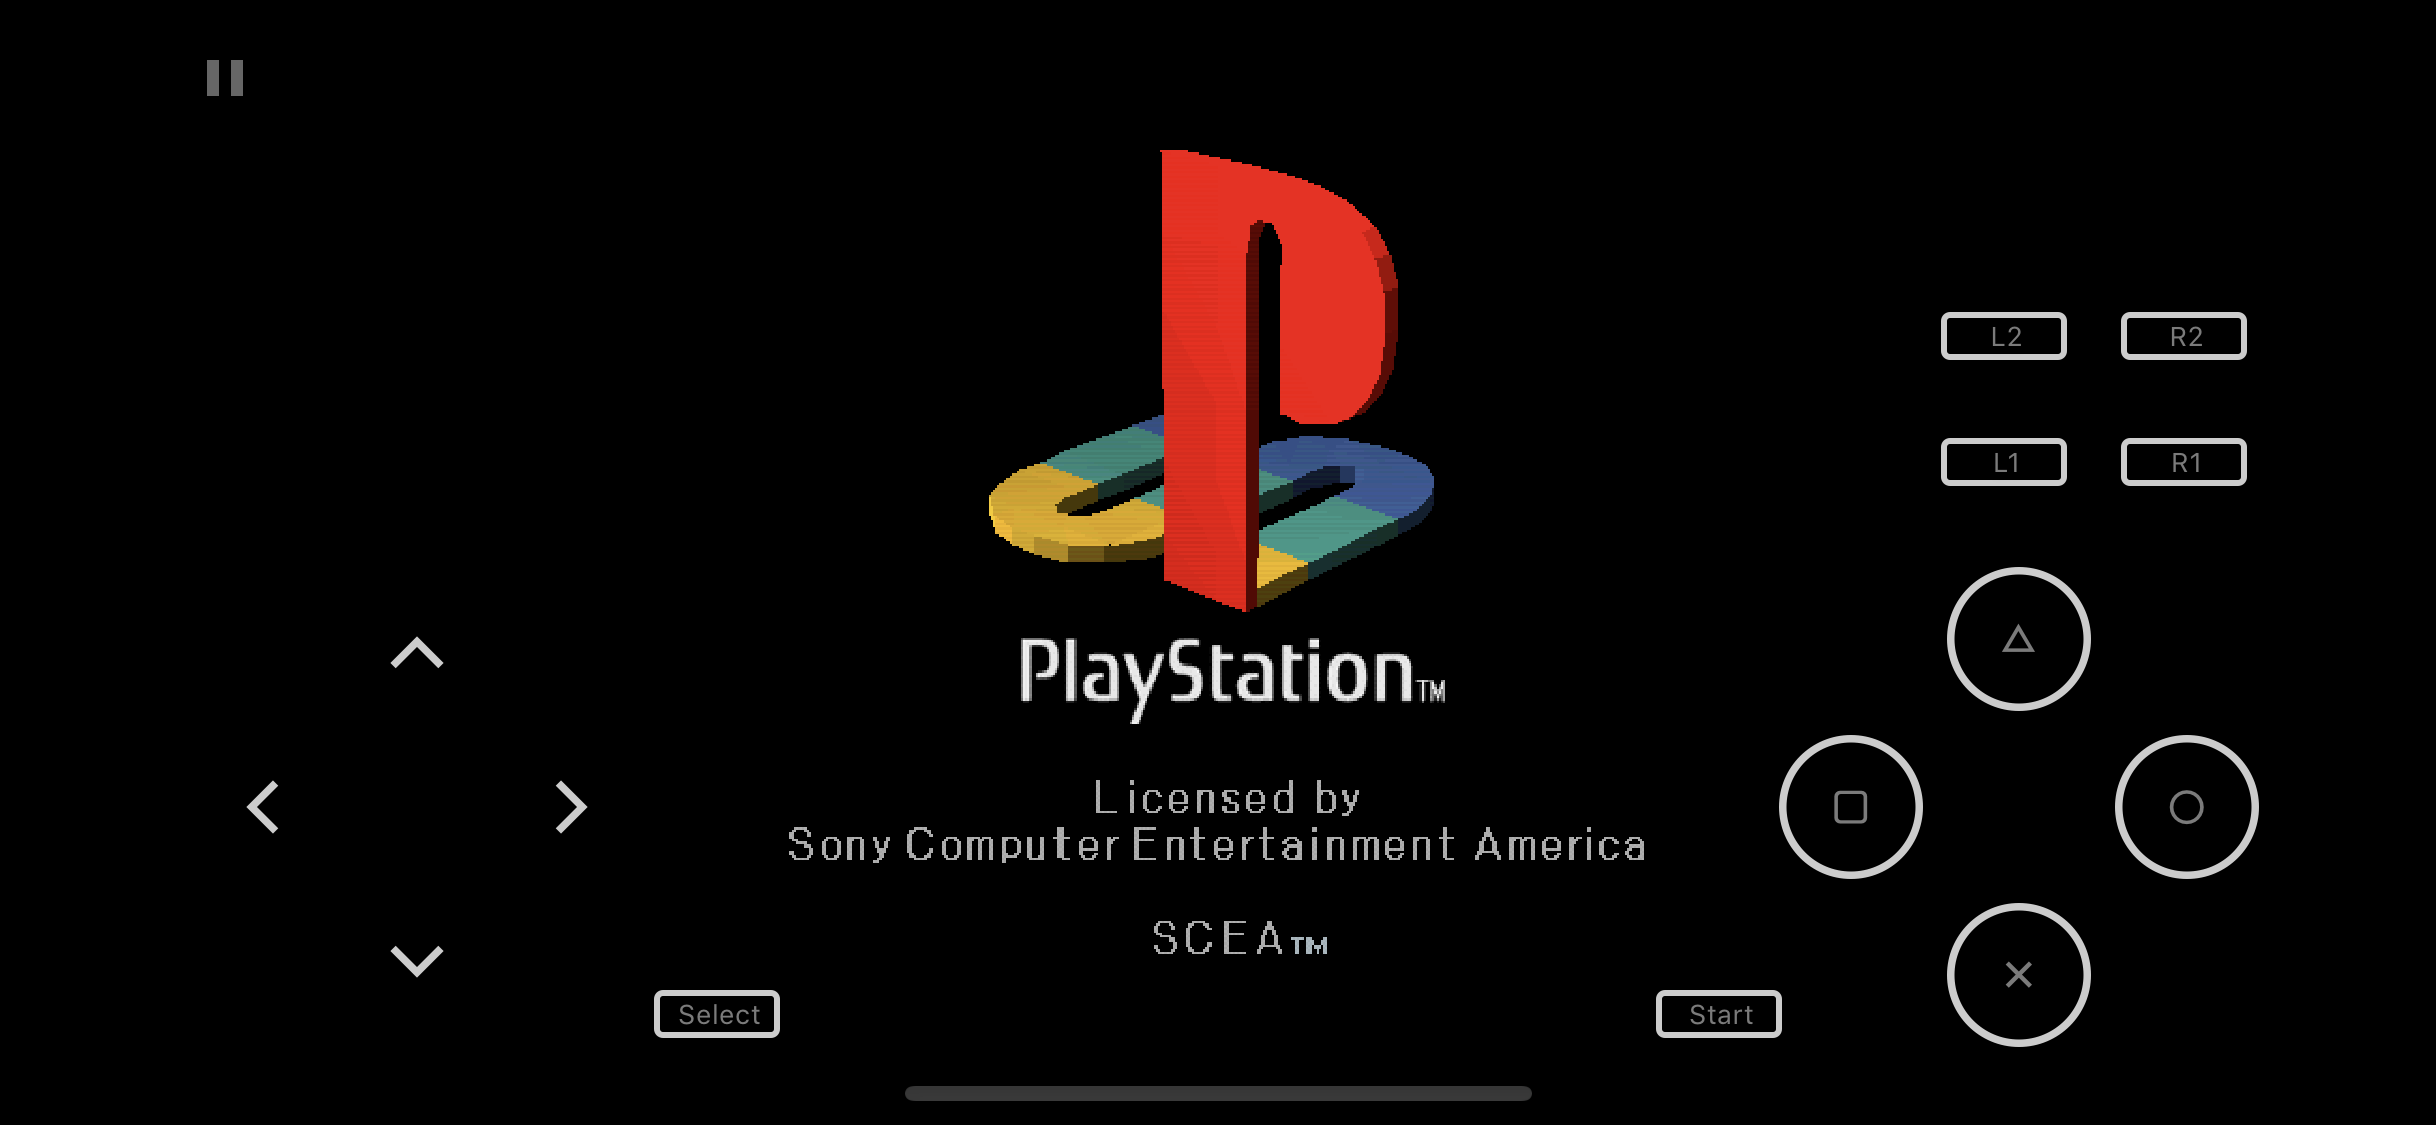 EU PSX games are stretched/squished · Issue #877